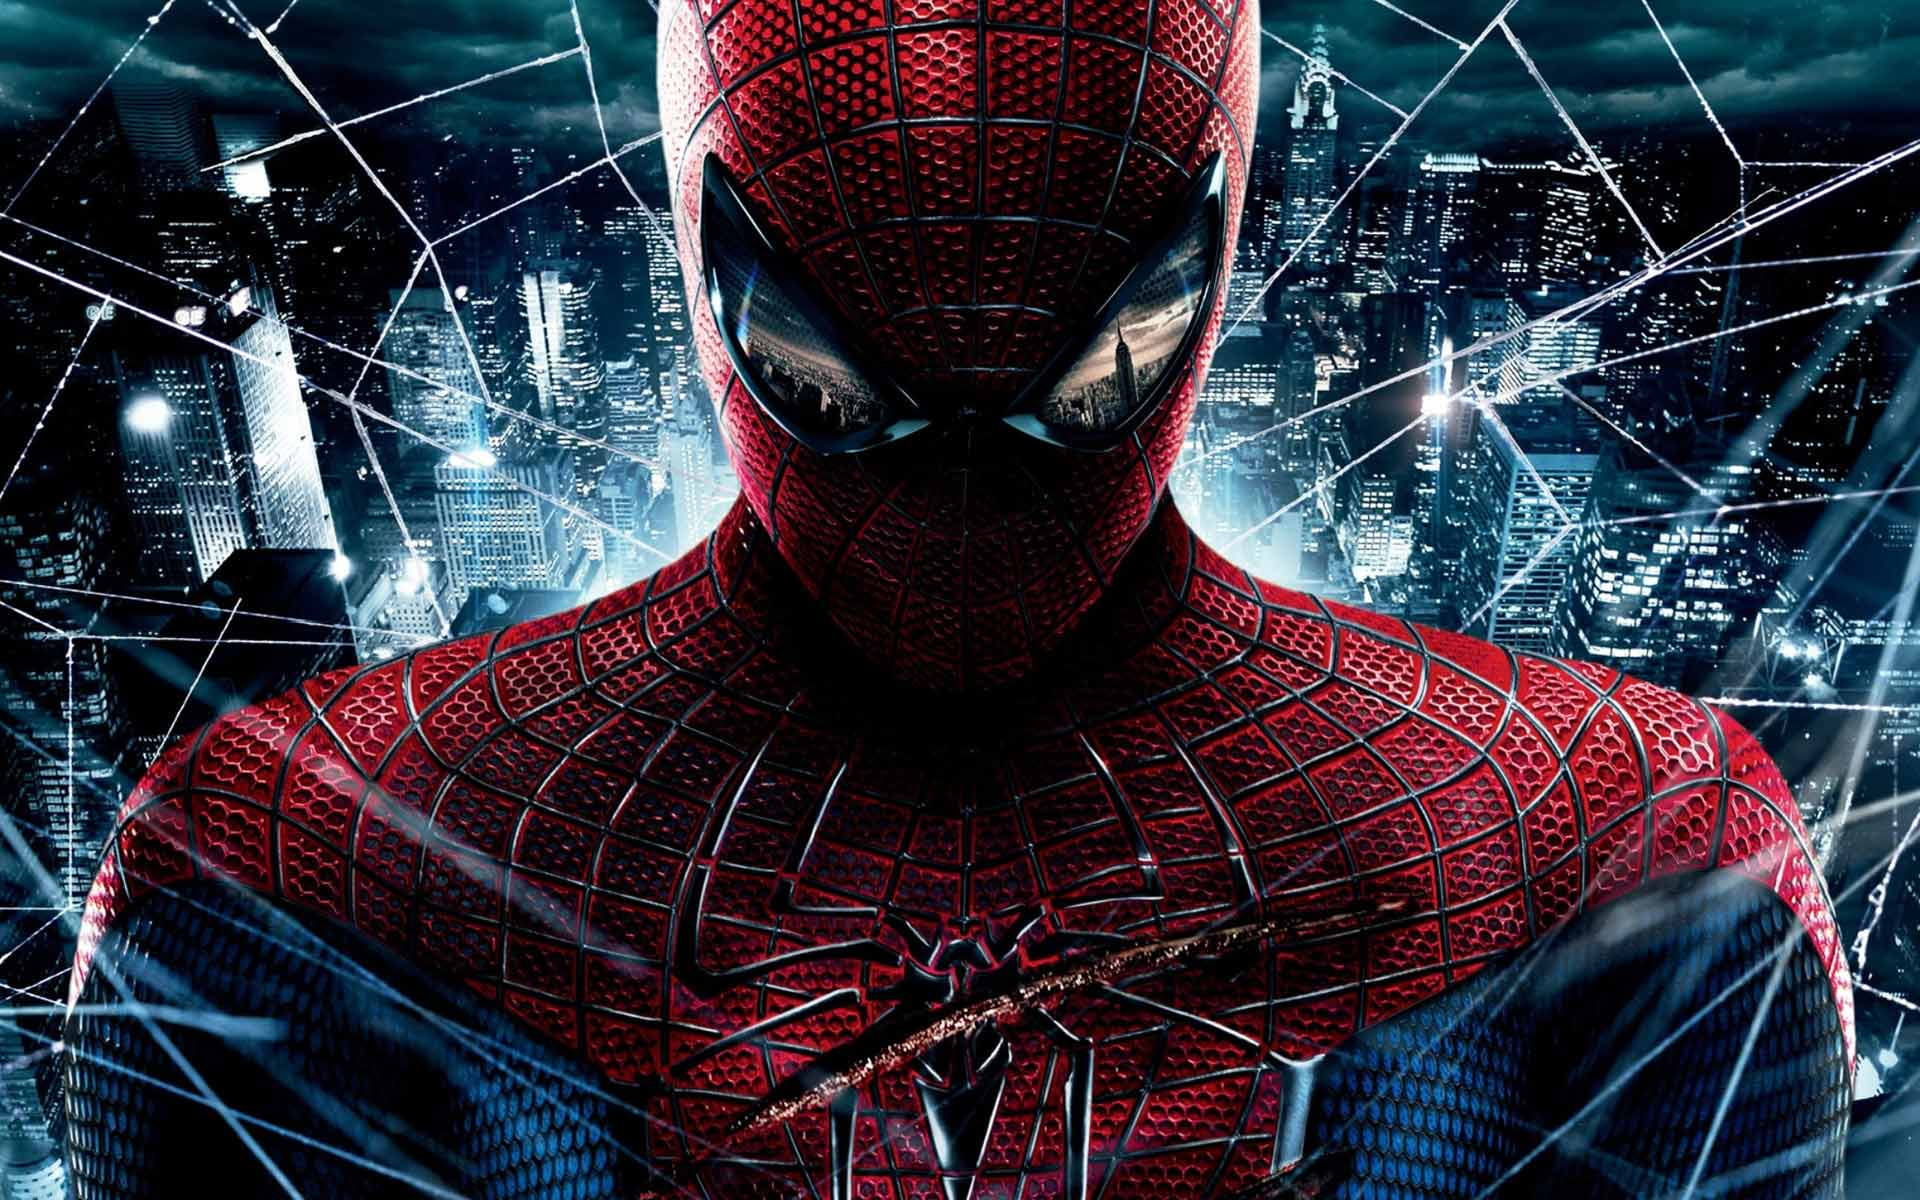 spiderman 2015 wallpapers - wallpaper cave